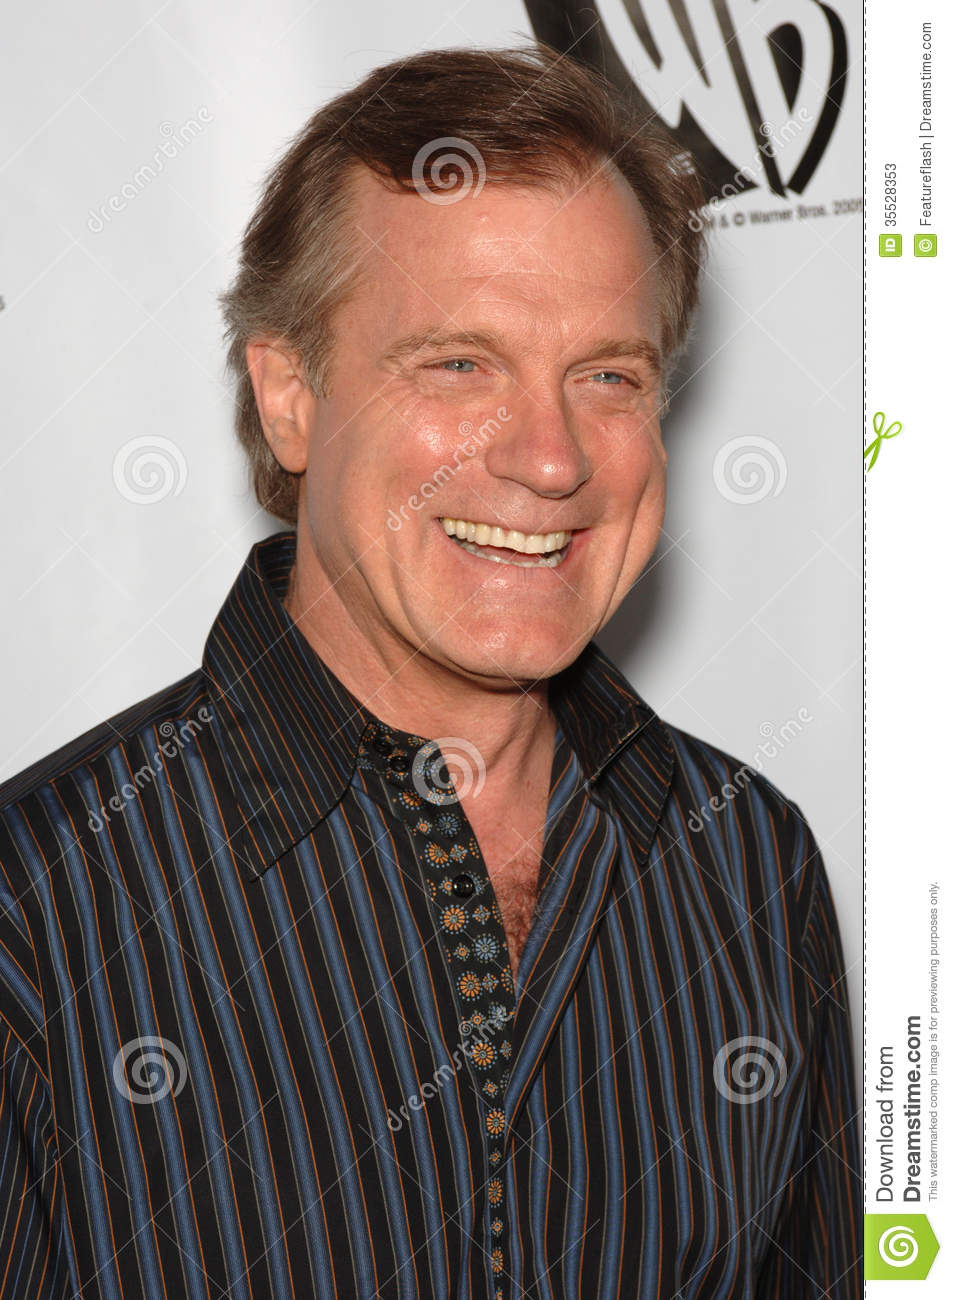 stephen collins net worthstephen collins actor, stephen collins foster, stephen collins 7th heaven, stephen collins net worth, stephen collins imdb, stephen collins katie couric, stephen collins wiki, stephen collins twitter, stephen collins biography, stephen collins actor death, stephen collins it's always sunny, stephen collins quantcast, stephen collins news, stephen collins the office, stephen collins warriors, stephen collins facebook, stephen collins walt whitman